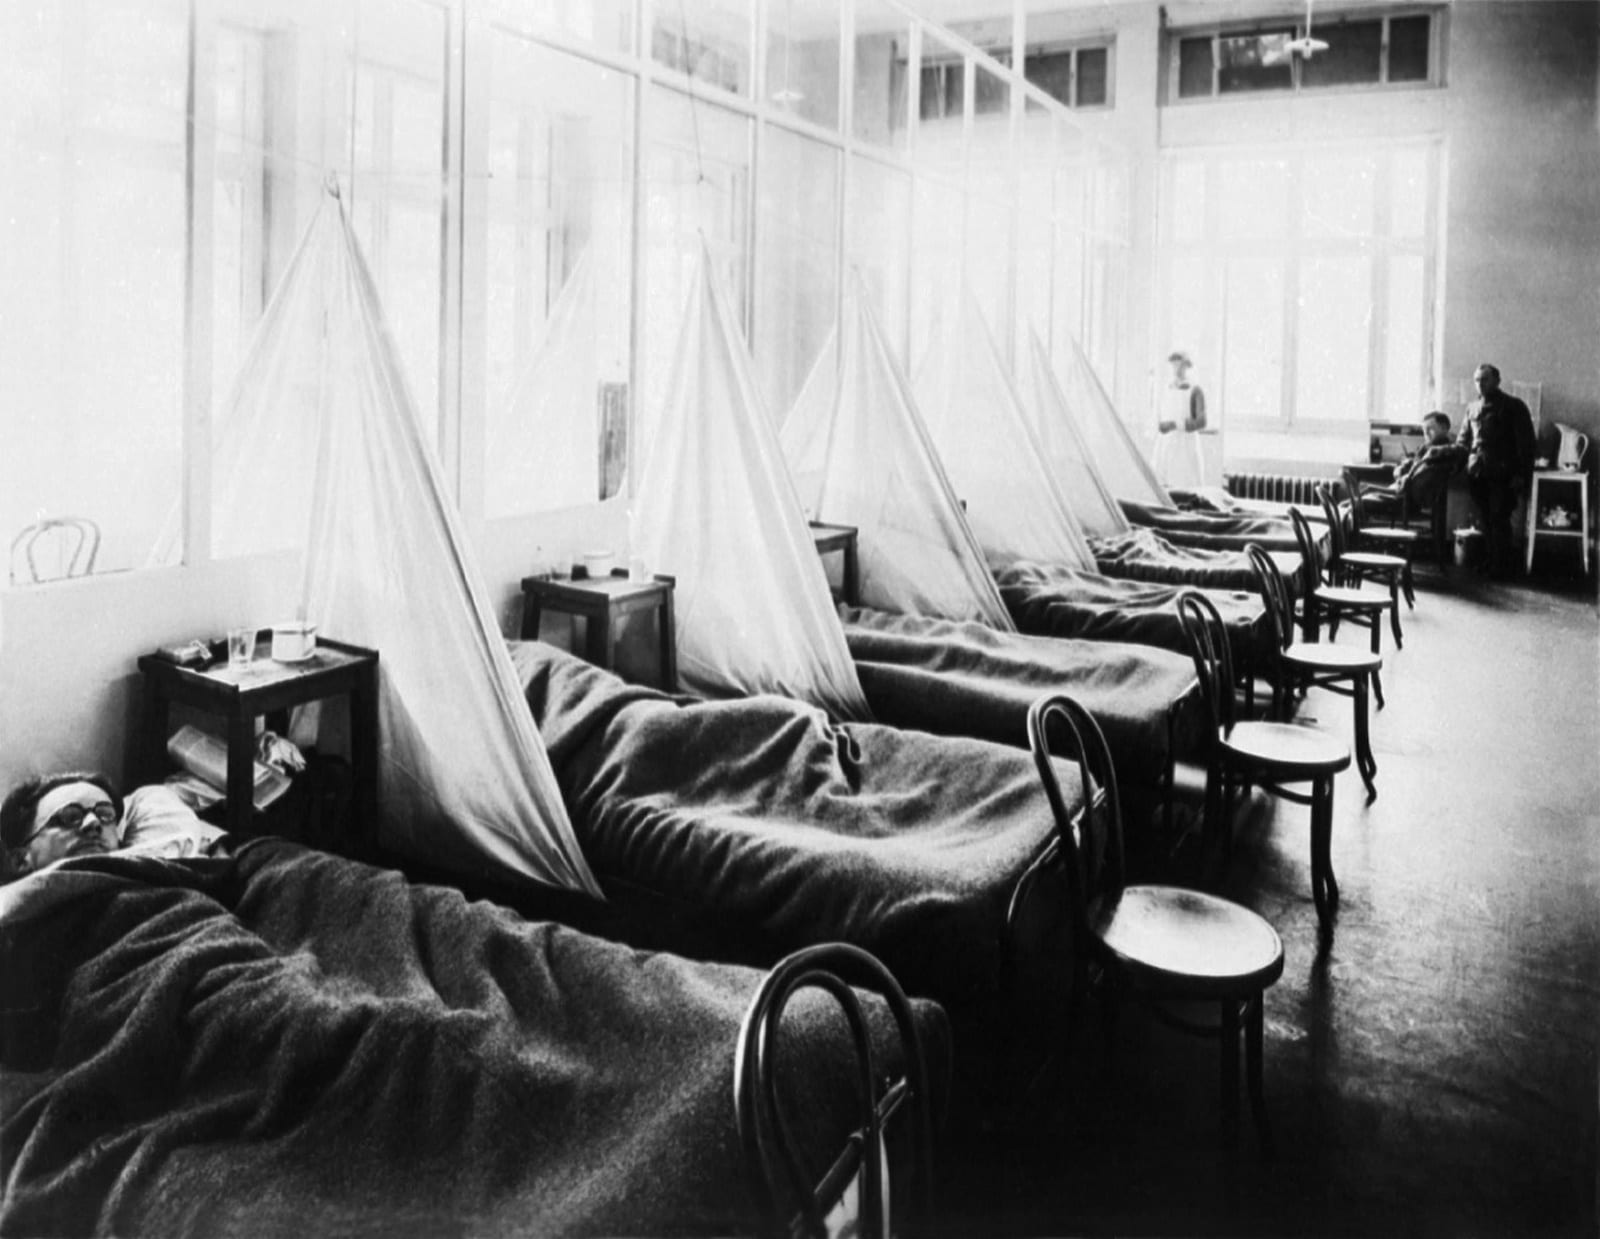 US Army Camp Hospital No. 45 France Spanish Flu Ward 1918